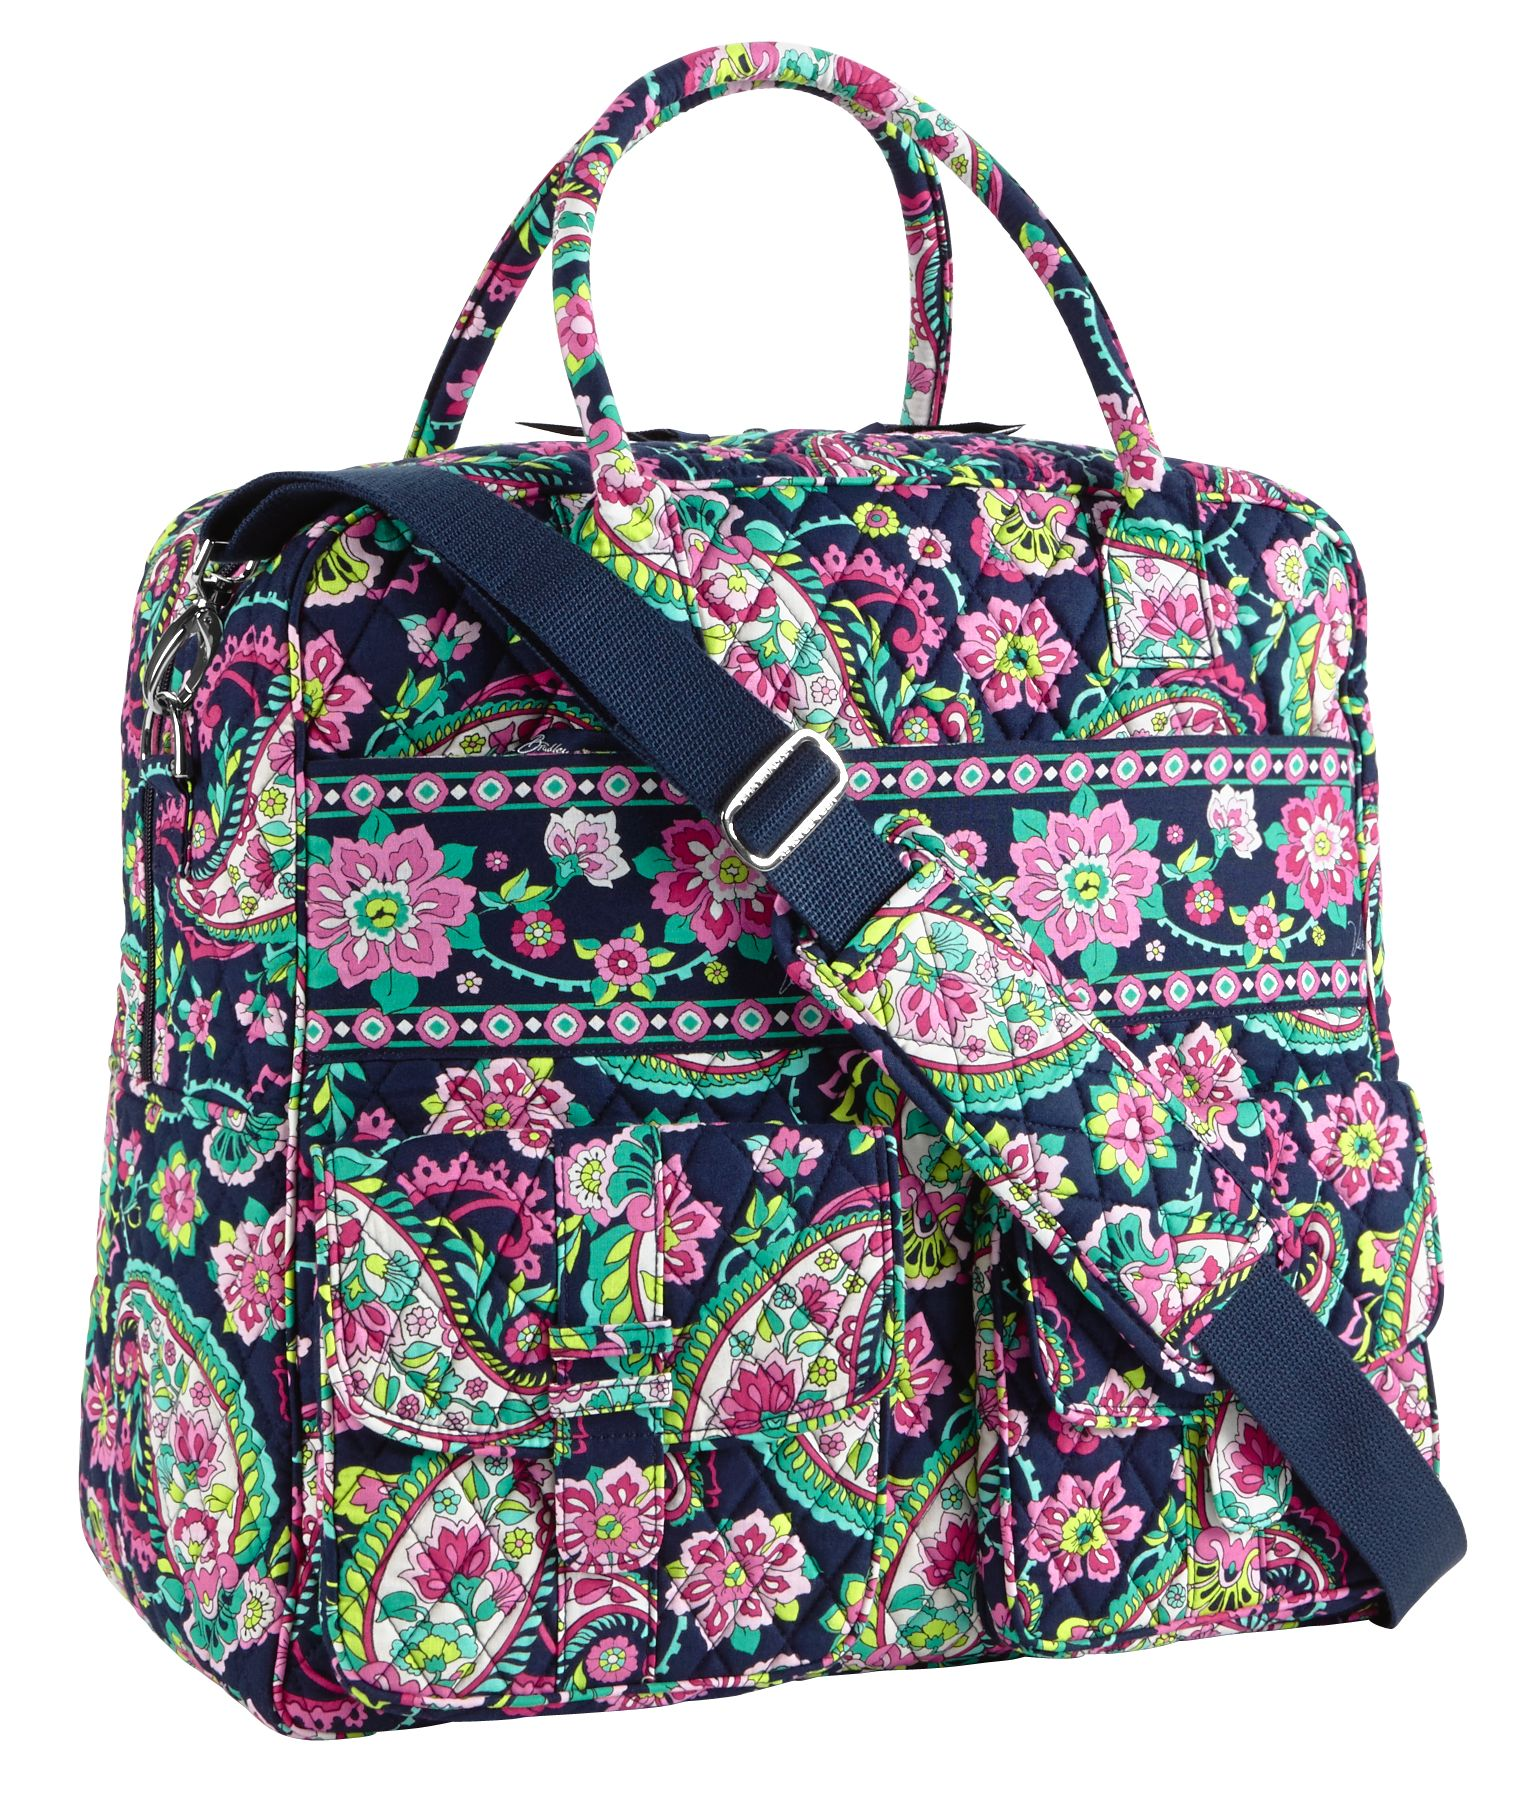 Vera Bradley Grand Cargo Bag Travel Bag | eBay